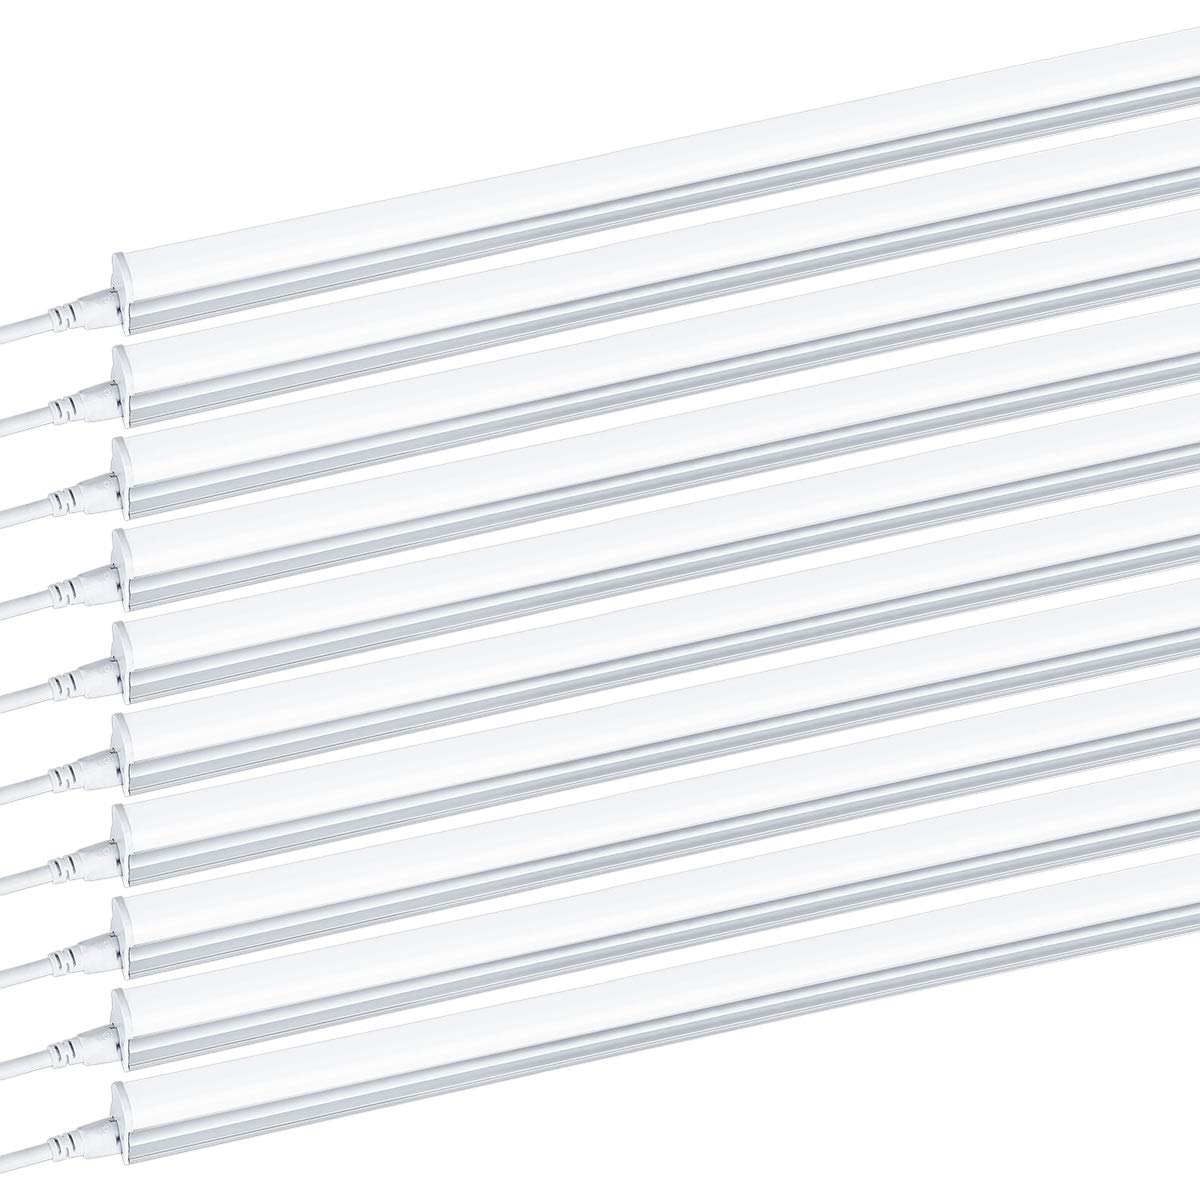 Brillihood T5 Integrated LED Single Light Fixture, 4FT, 2200lm, 6000K (Bright White) Milky Cover, 20W Utility Shop Light, Kitchen, Ceiling and Under Cabinet Light Tube with ON/Off Switch (10-Pack) by Brillihood